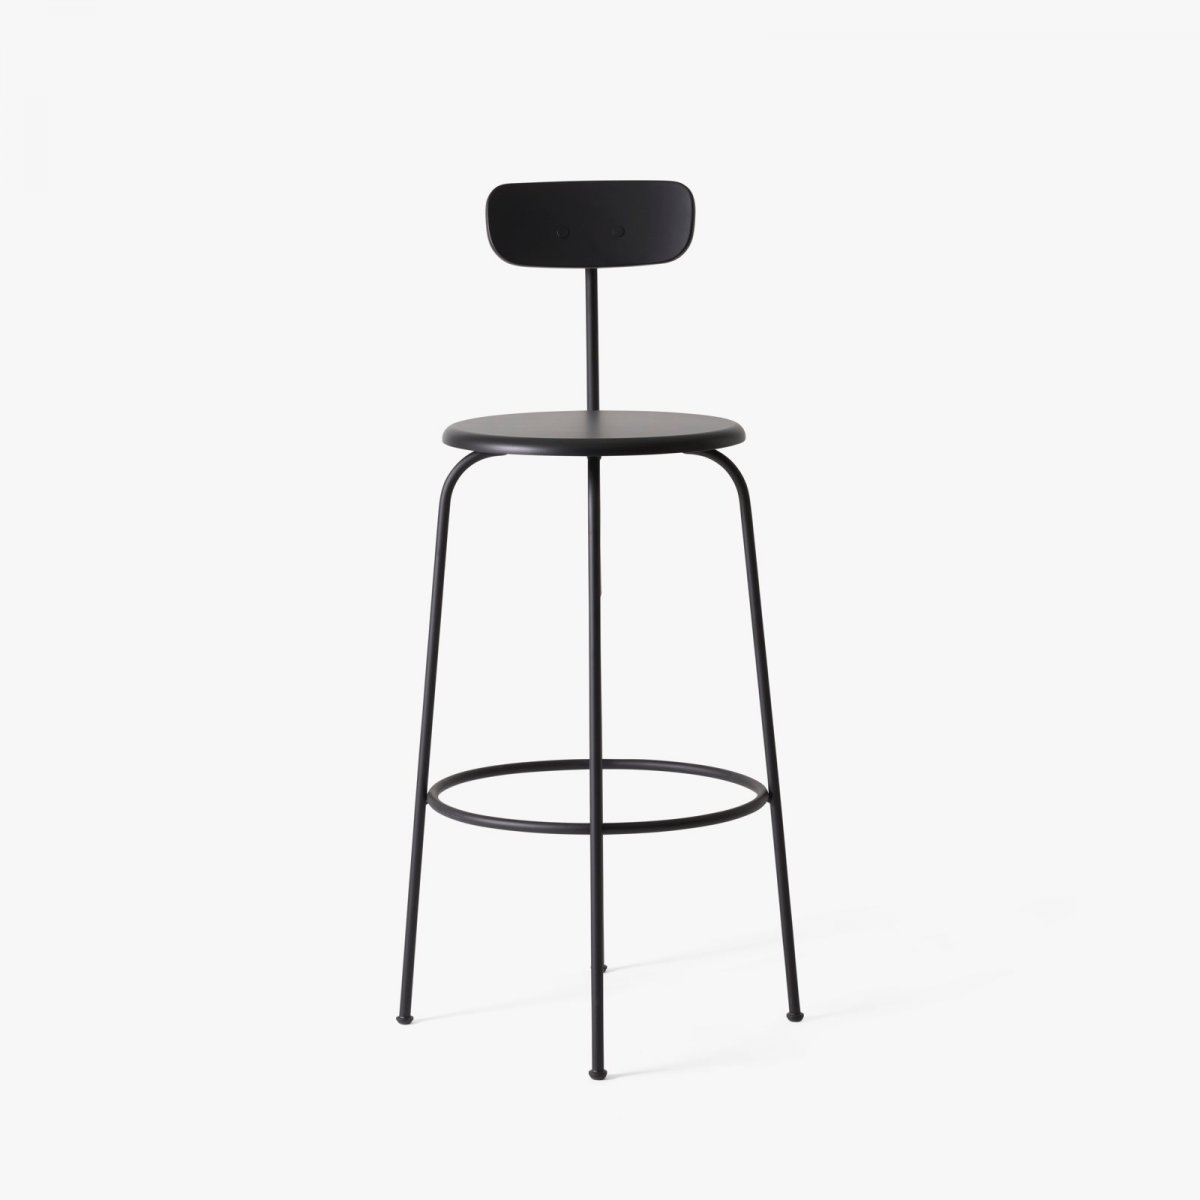 Afteroom Bar Chair, black.